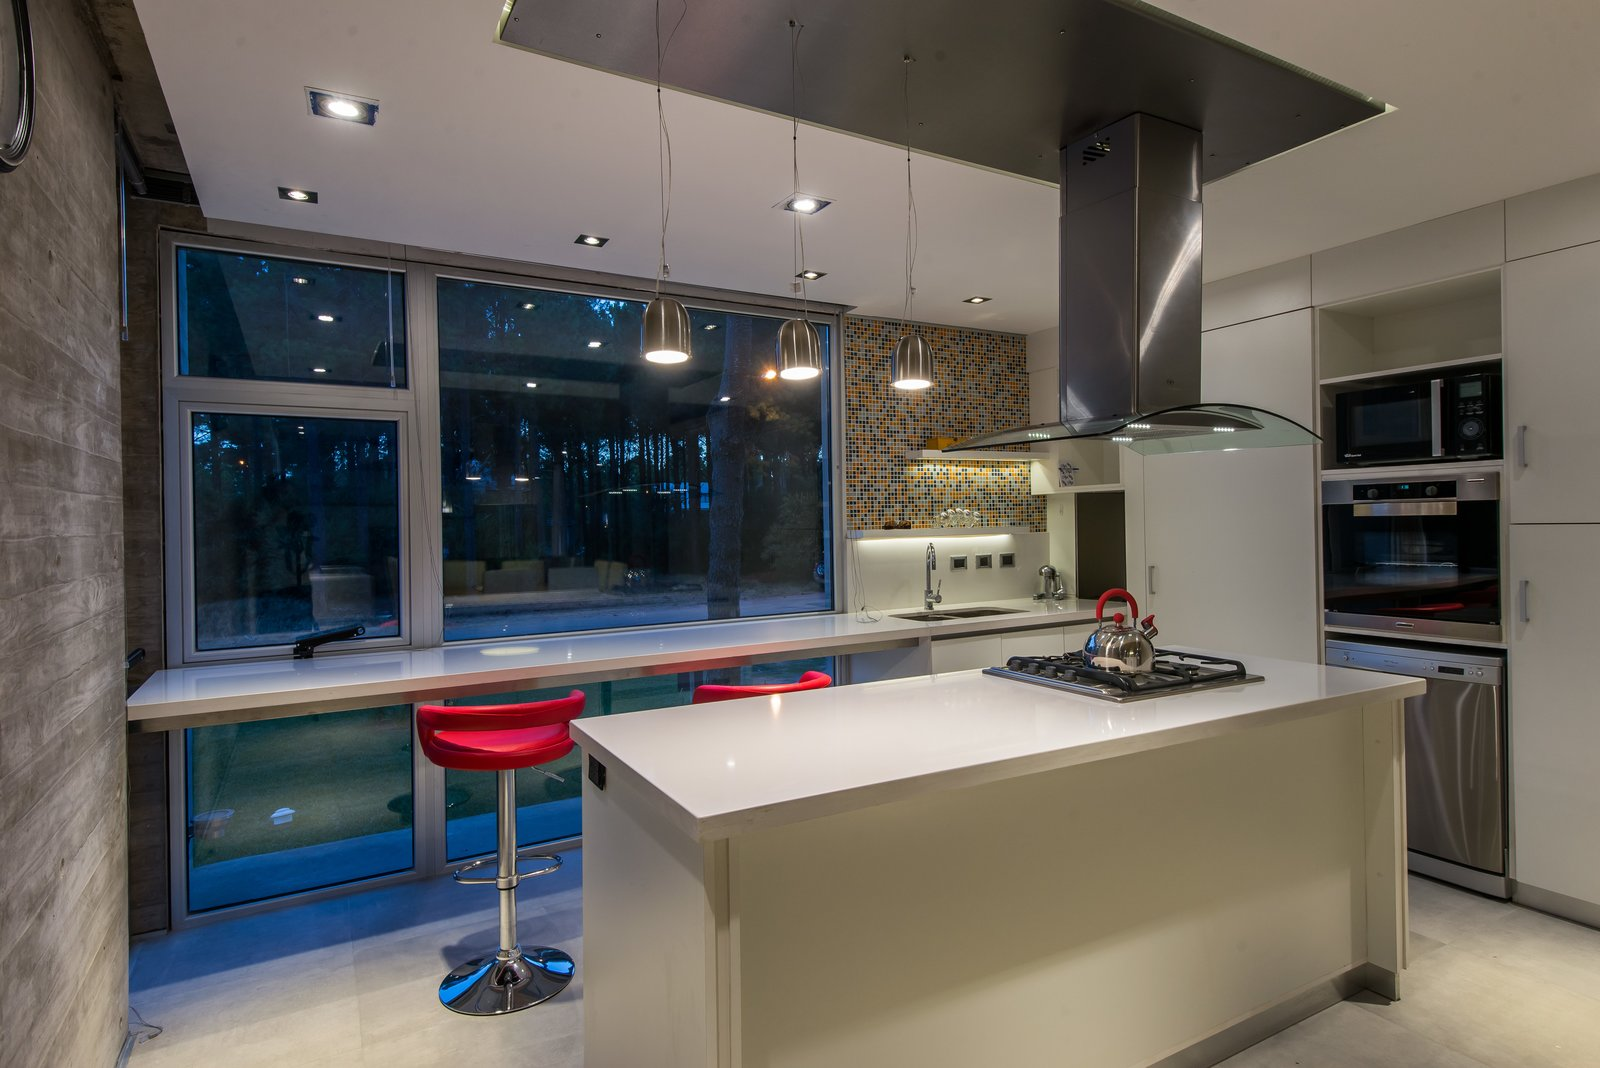 Kitchen, Quartzite Counter, White Cabinet, Porcelain Tile Floor, Mosaic Tile Backsplashe, Wall Oven, Ceiling Lighting, Refrigerator, Cooktops, Drop In Sink, Microwave, and Dishwasher  Casa Batin by Estudio Galera